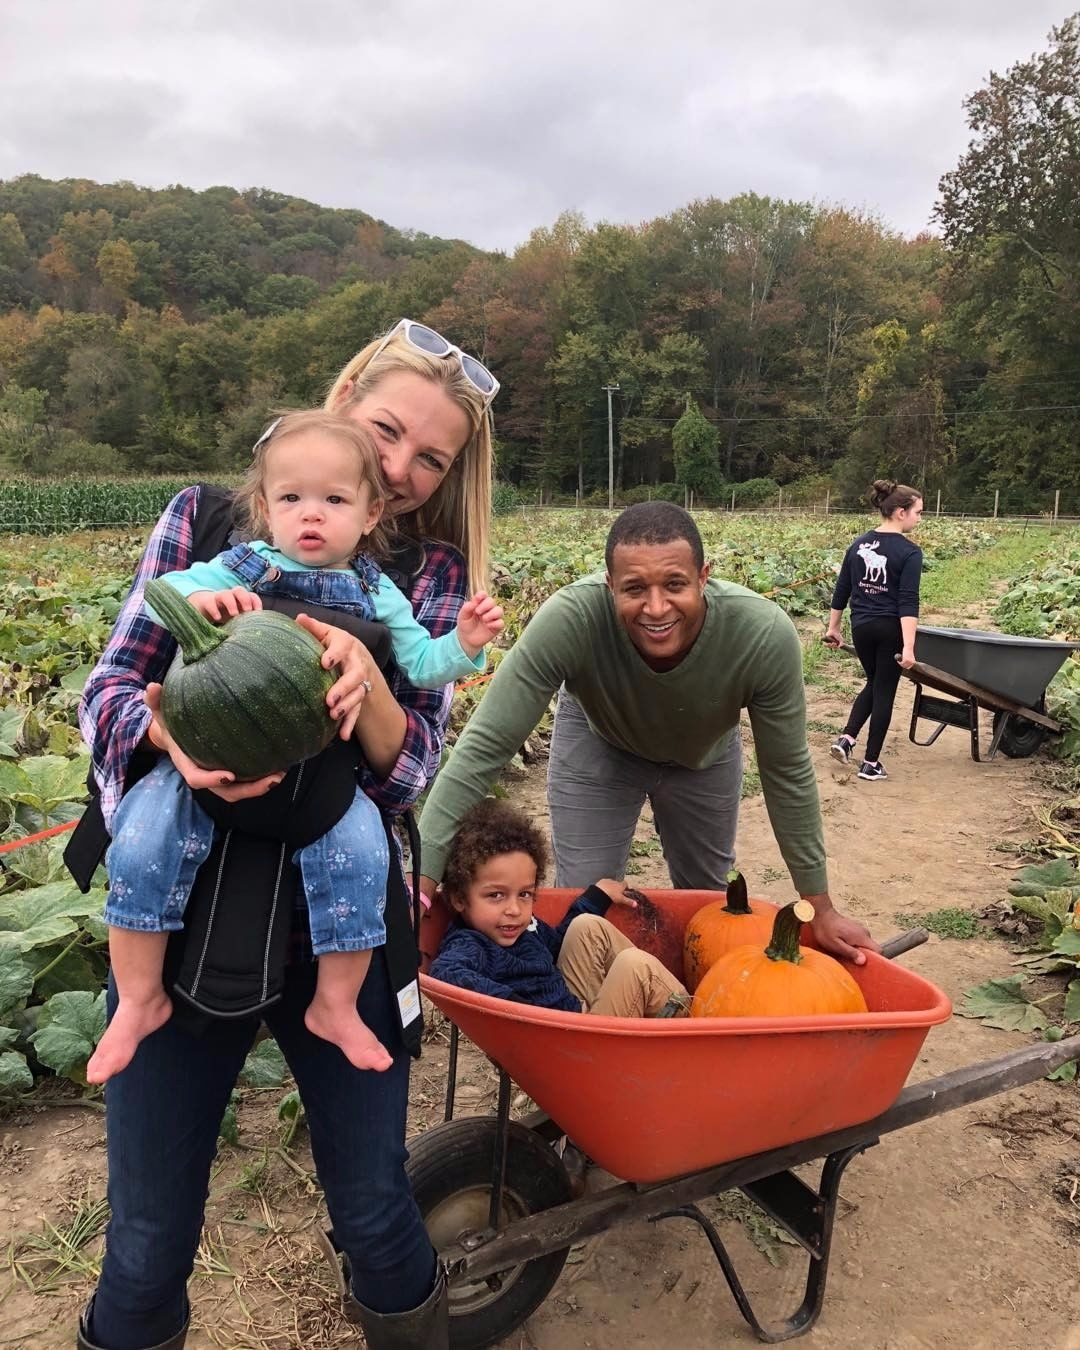 Craig Melvin's day out  with his family. They hold two pumpkins and a gourd. They are having fun in a pumpkin field.